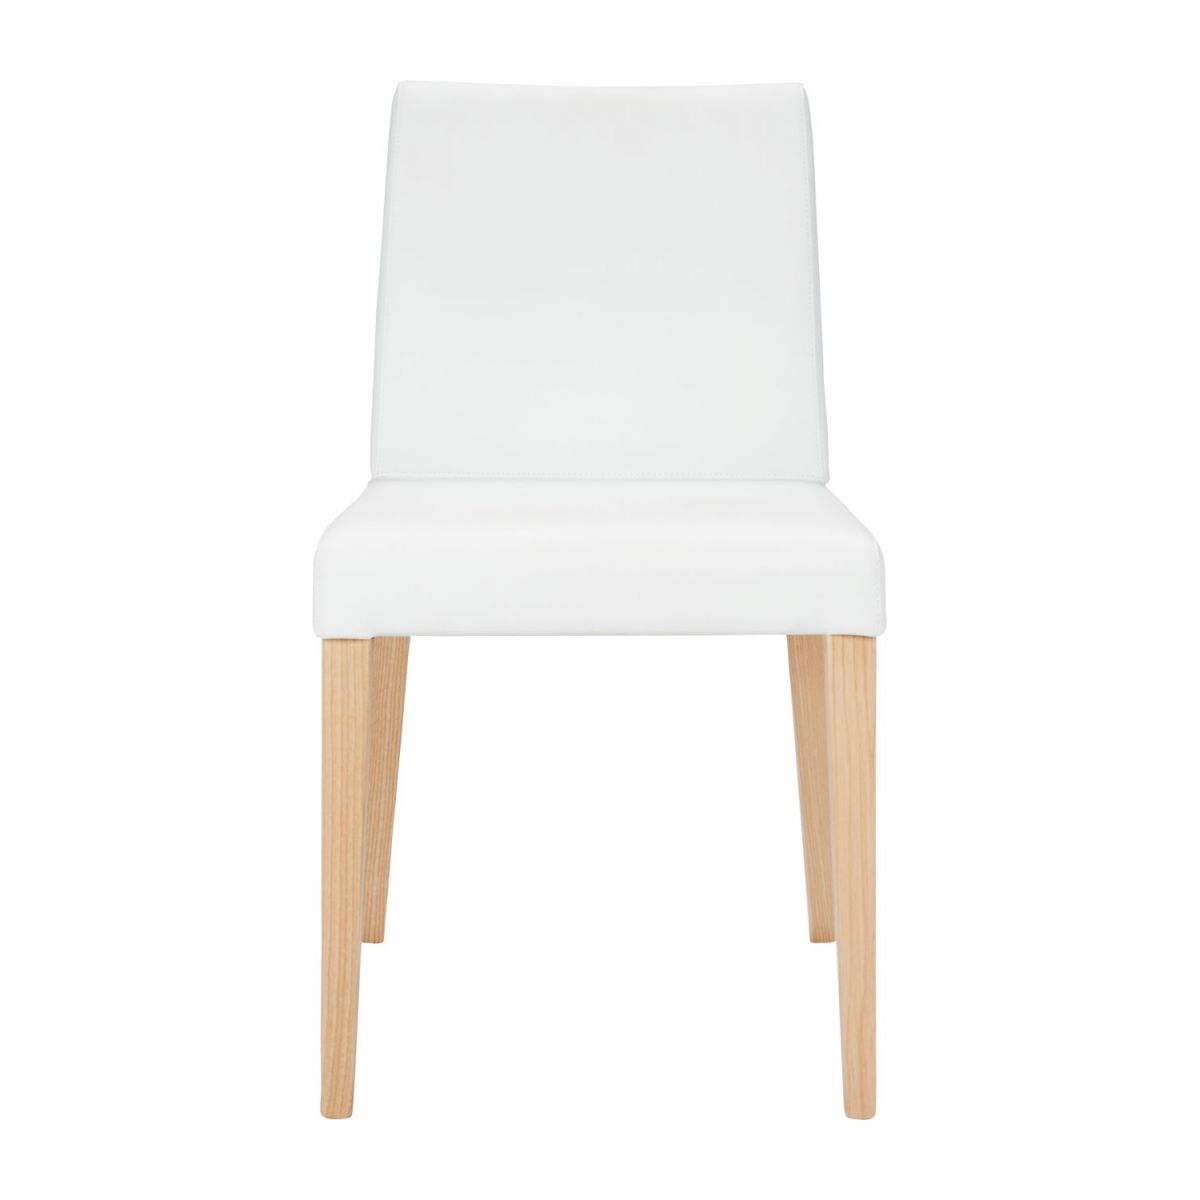 Chair made of imitation leather, white with ash legs n°3